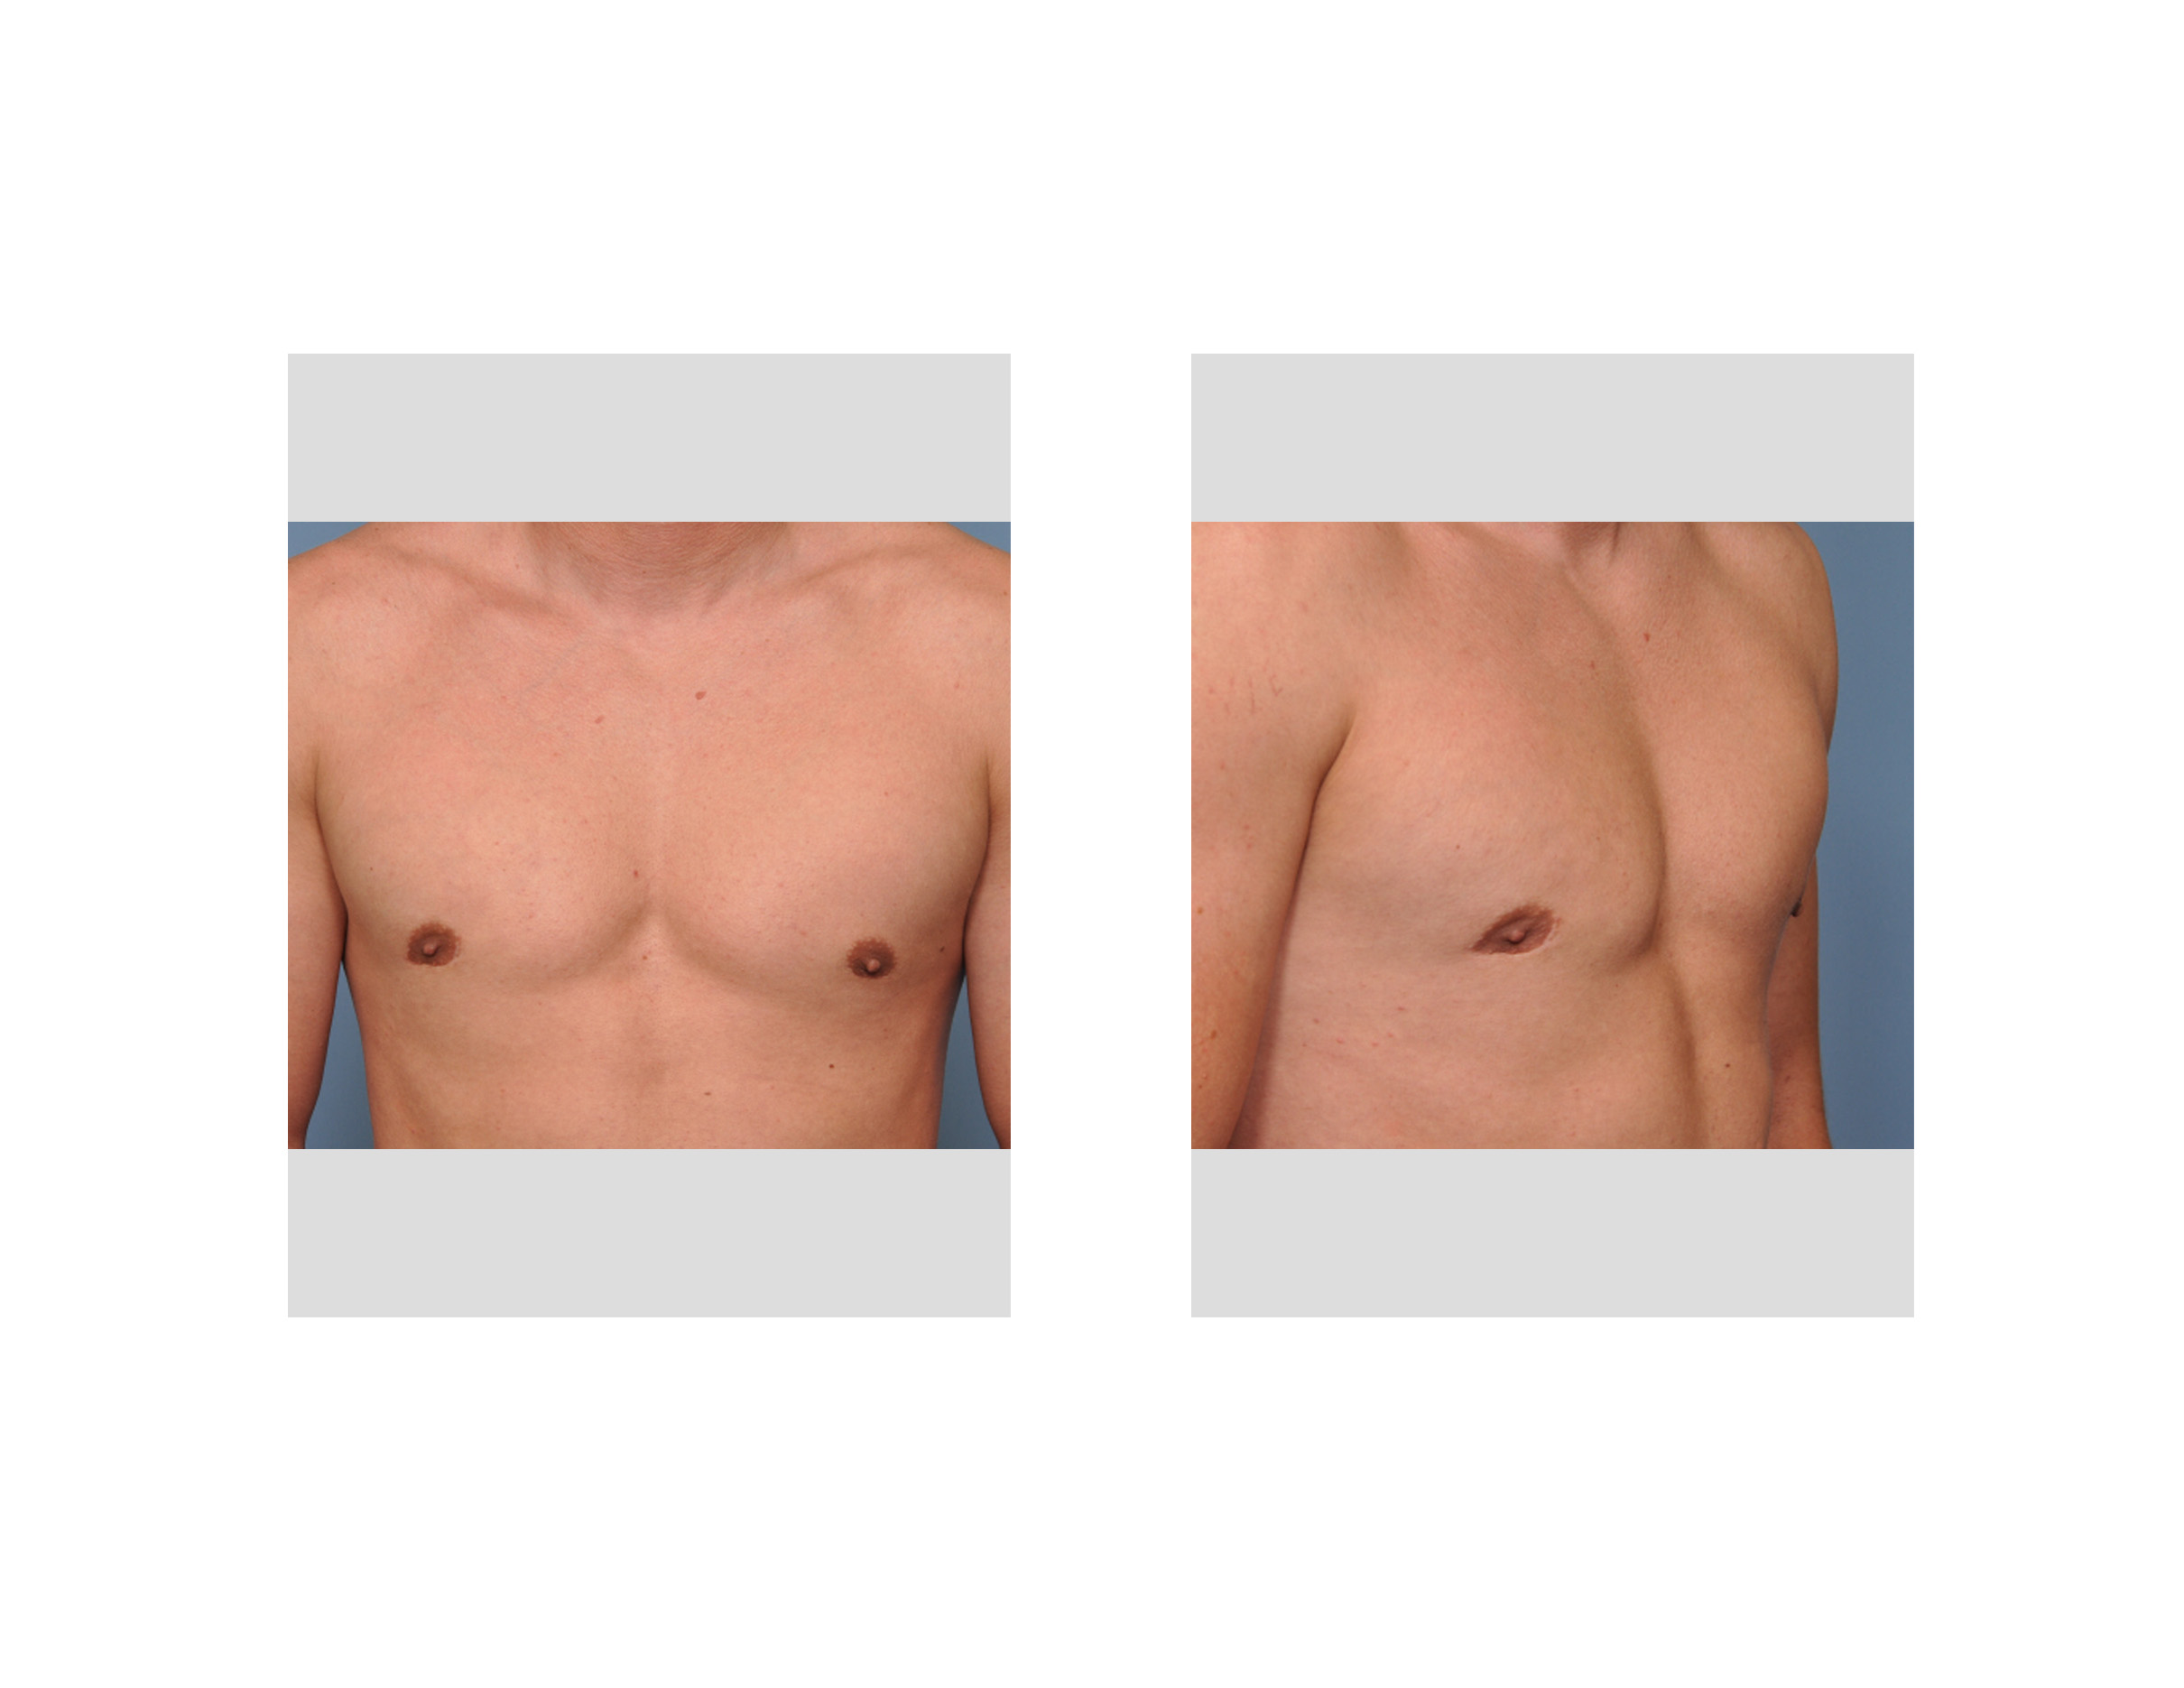 gynecomastia deformity dr barry eppley indianapolis Gynexin Bad You